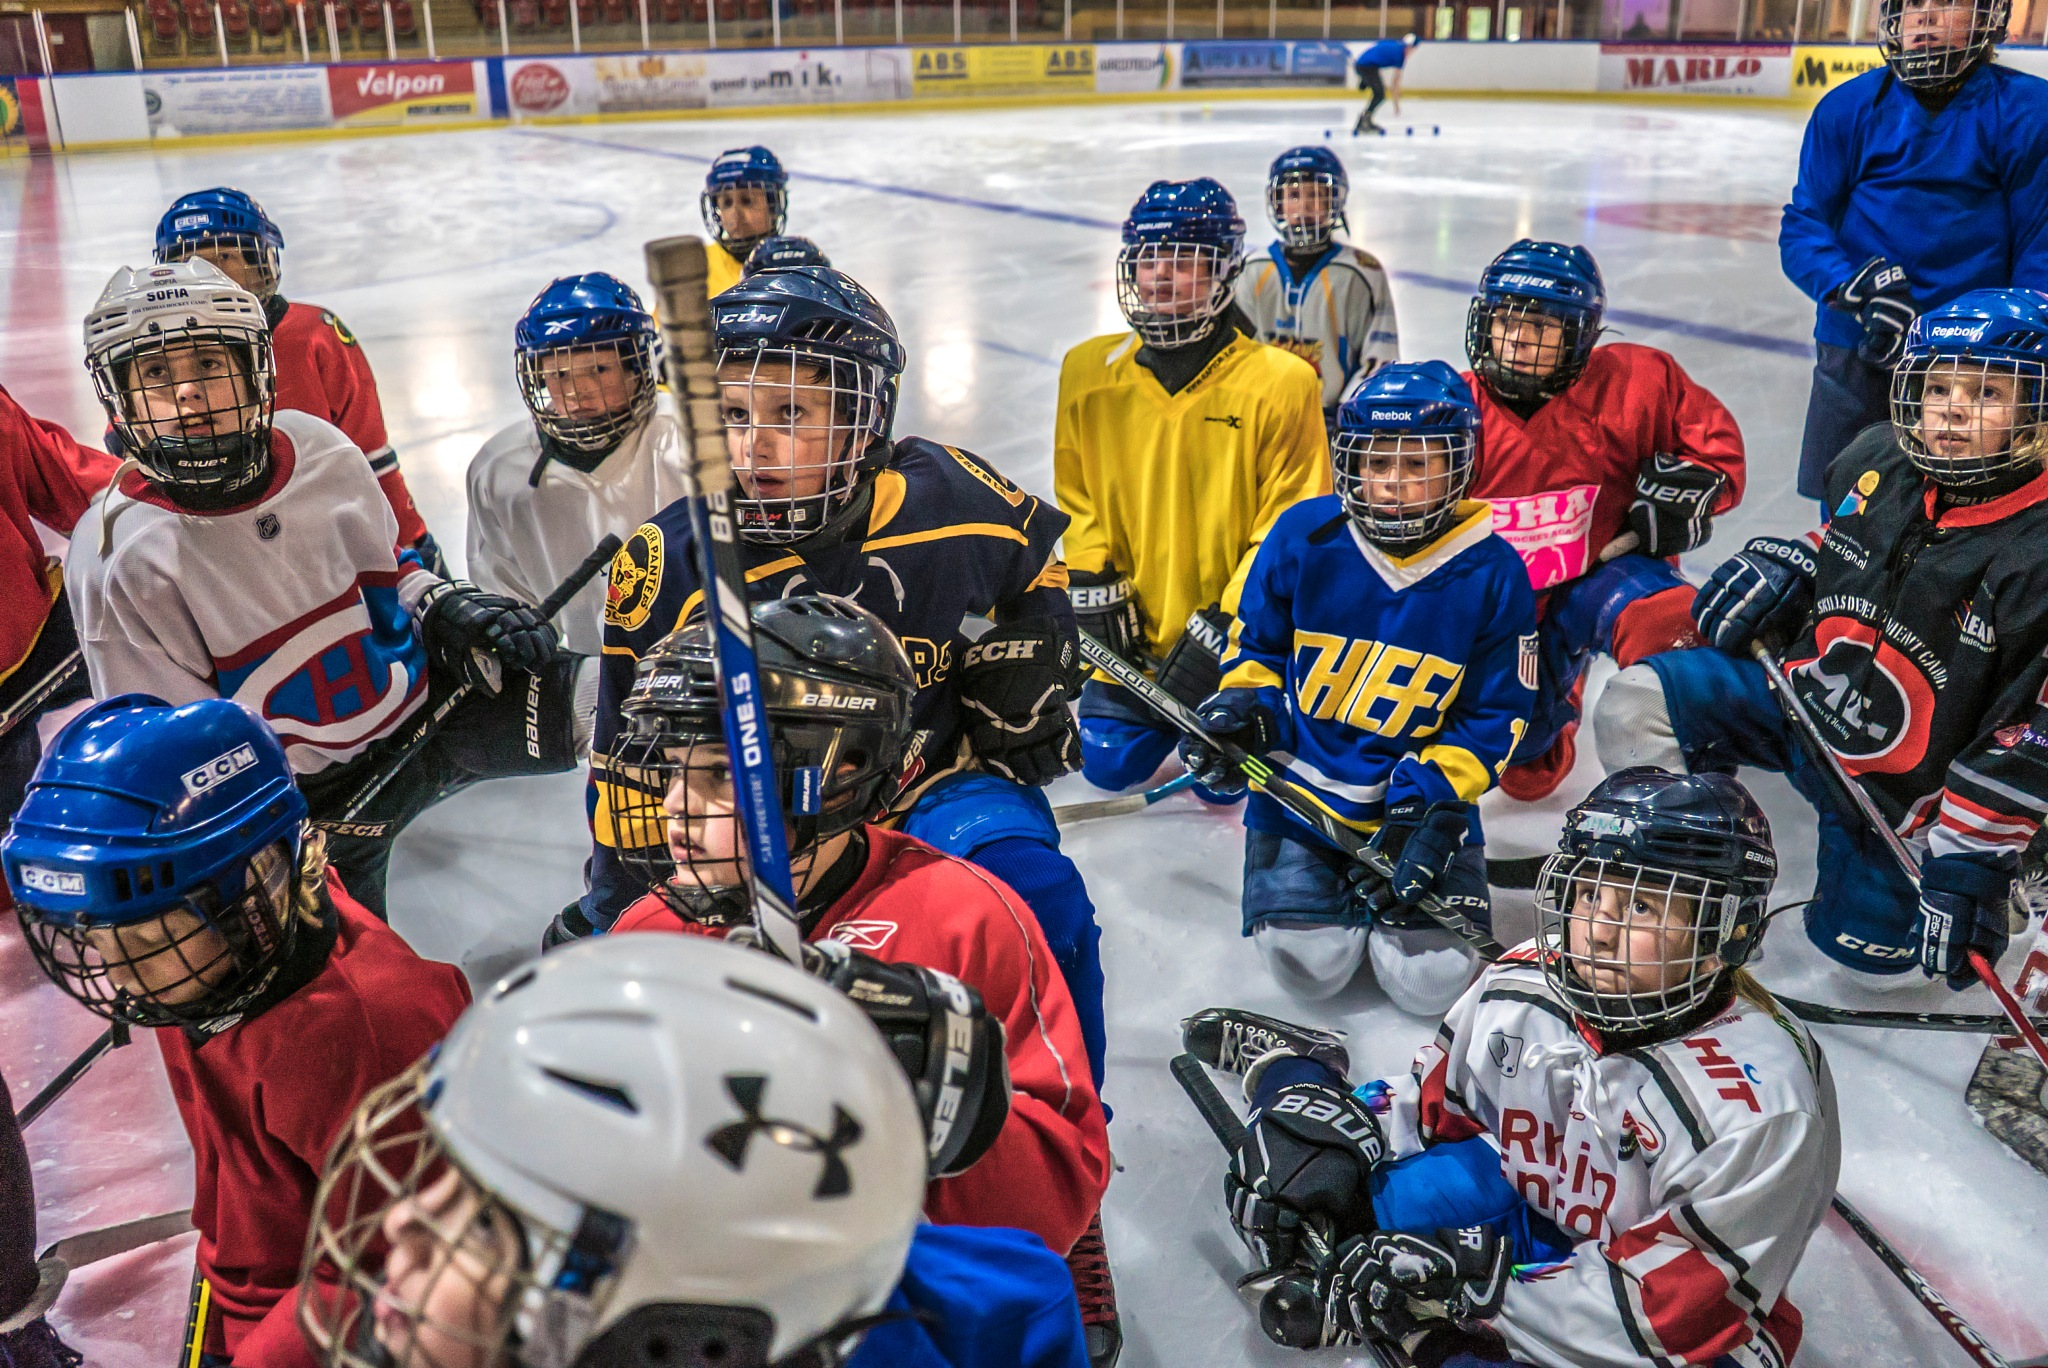 Silverdome Panters, Zoetermeer, Holland - Young ice hockey players by fred.leeflang.7